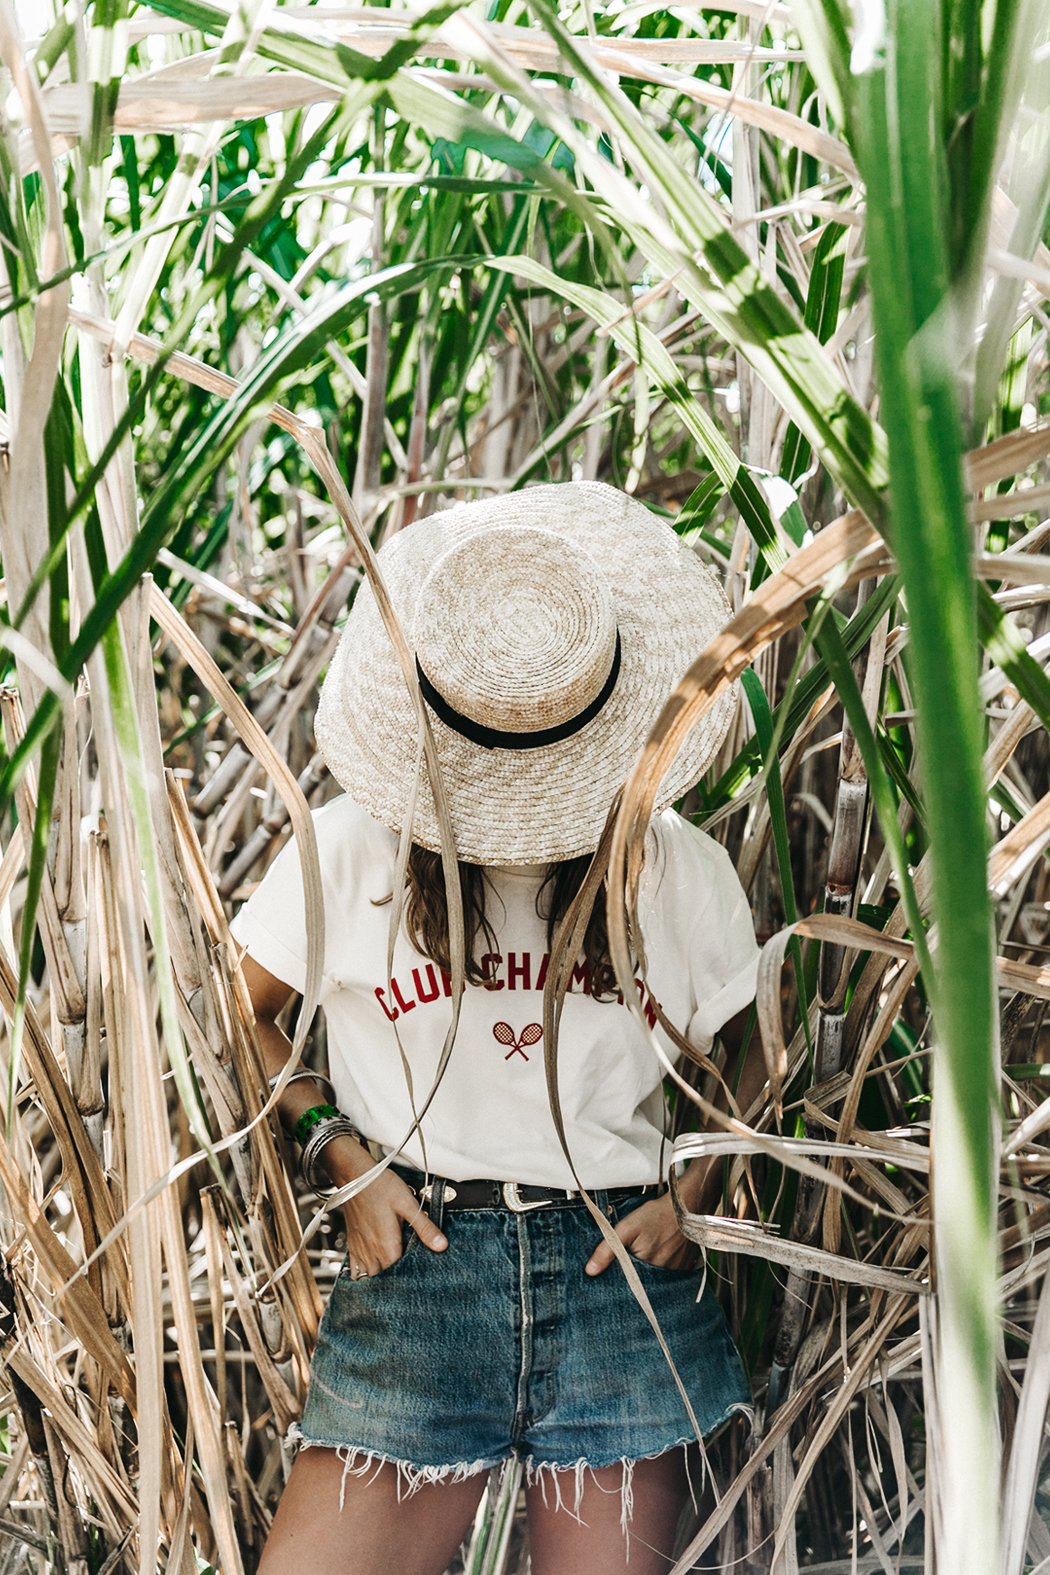 Jamica-Sugar_Cane_Field-Levis-Straw_Hat-Reebok_Tee-Outfit-Summer-Collage_on_The_Road-Bamboo_Walls-3